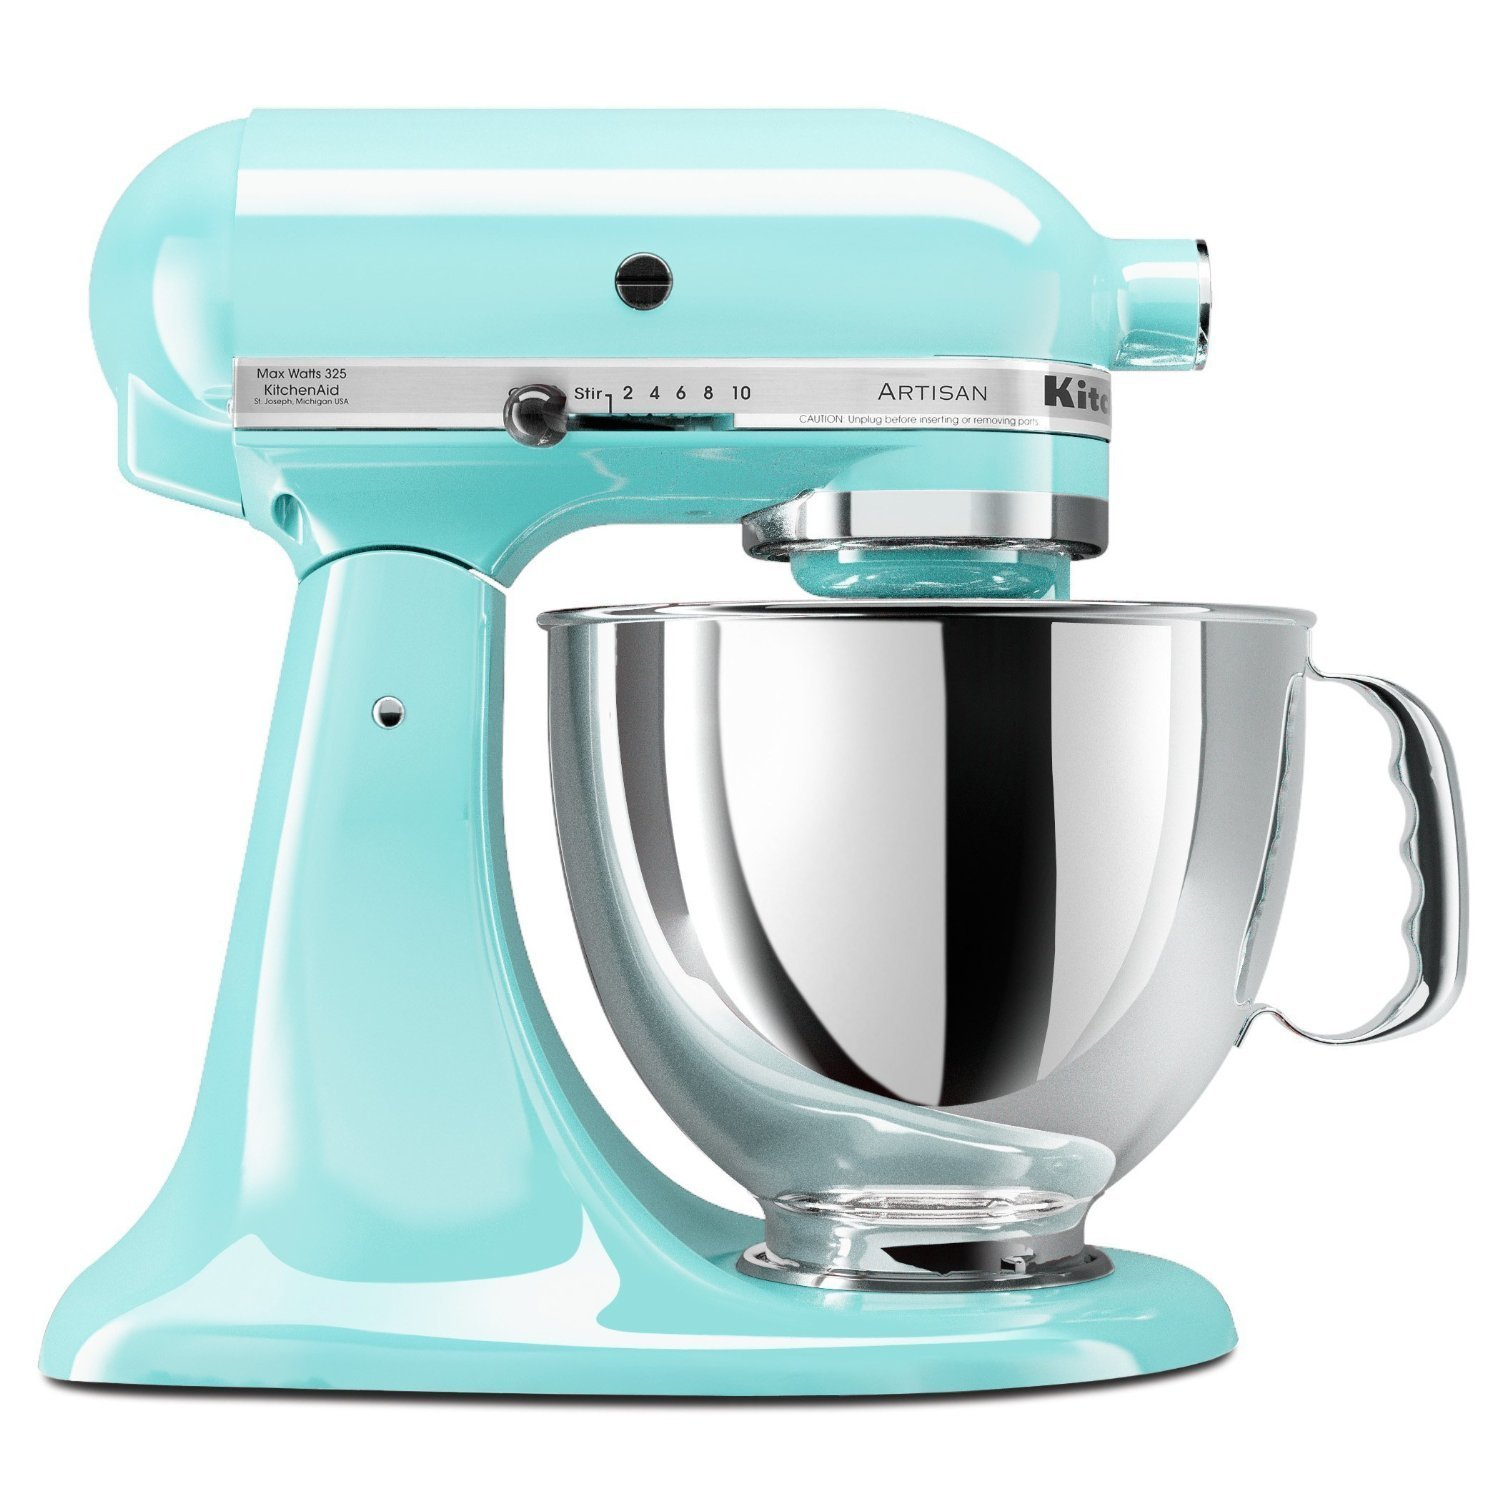 littlekitchenshop kitchenaid artisan 5 quart stand mixer range in blue green. Black Bedroom Furniture Sets. Home Design Ideas